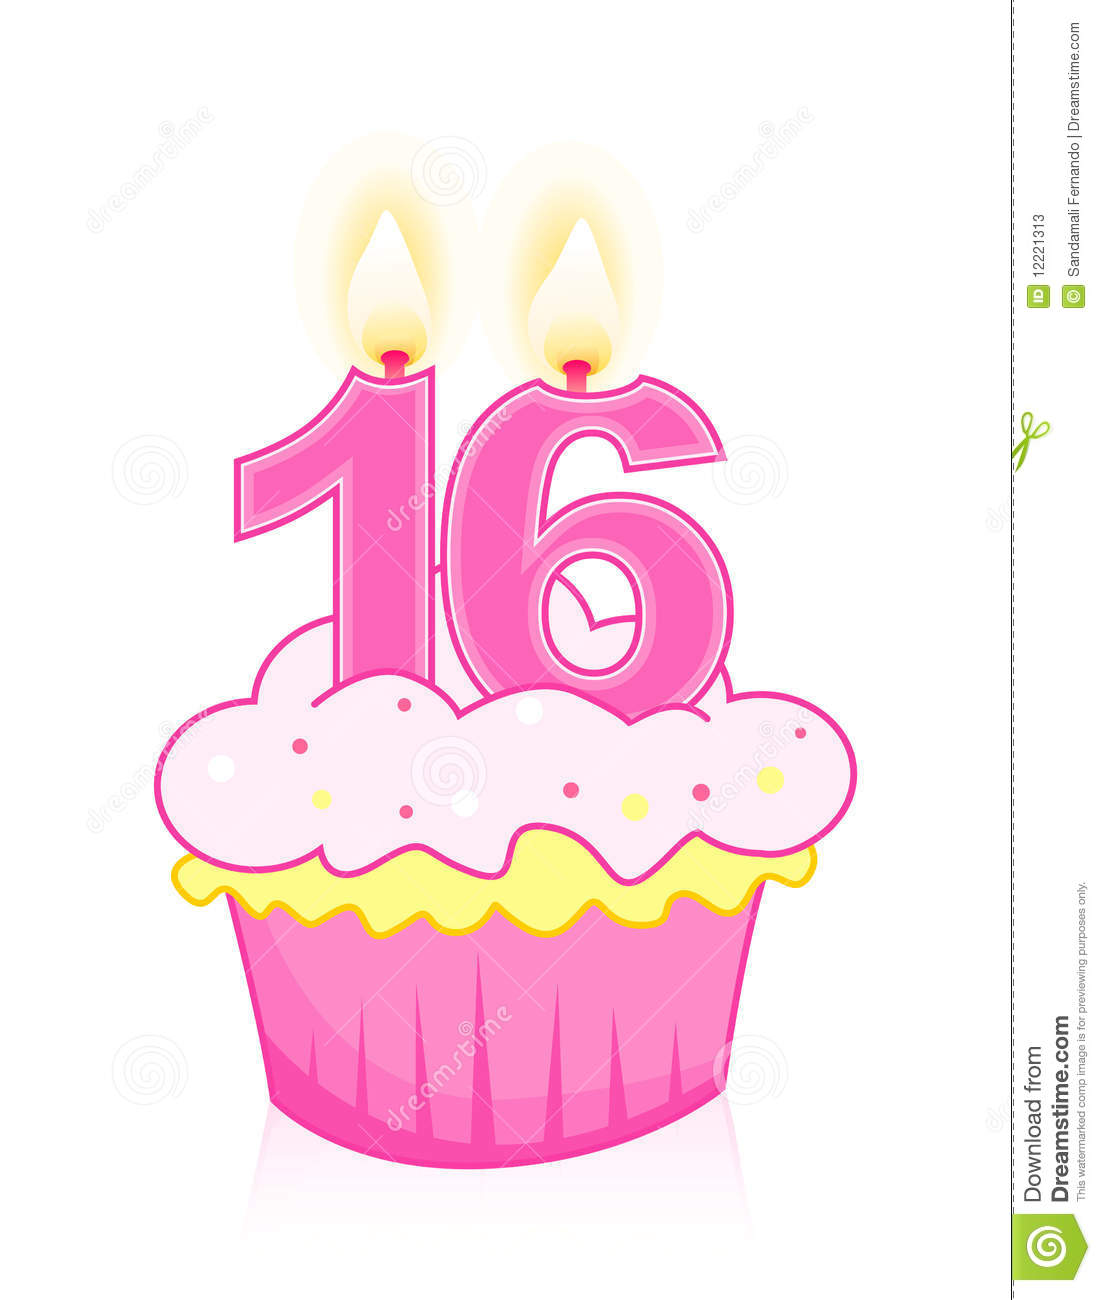 16th birthday clipart tumblr clipart images gallery for free.